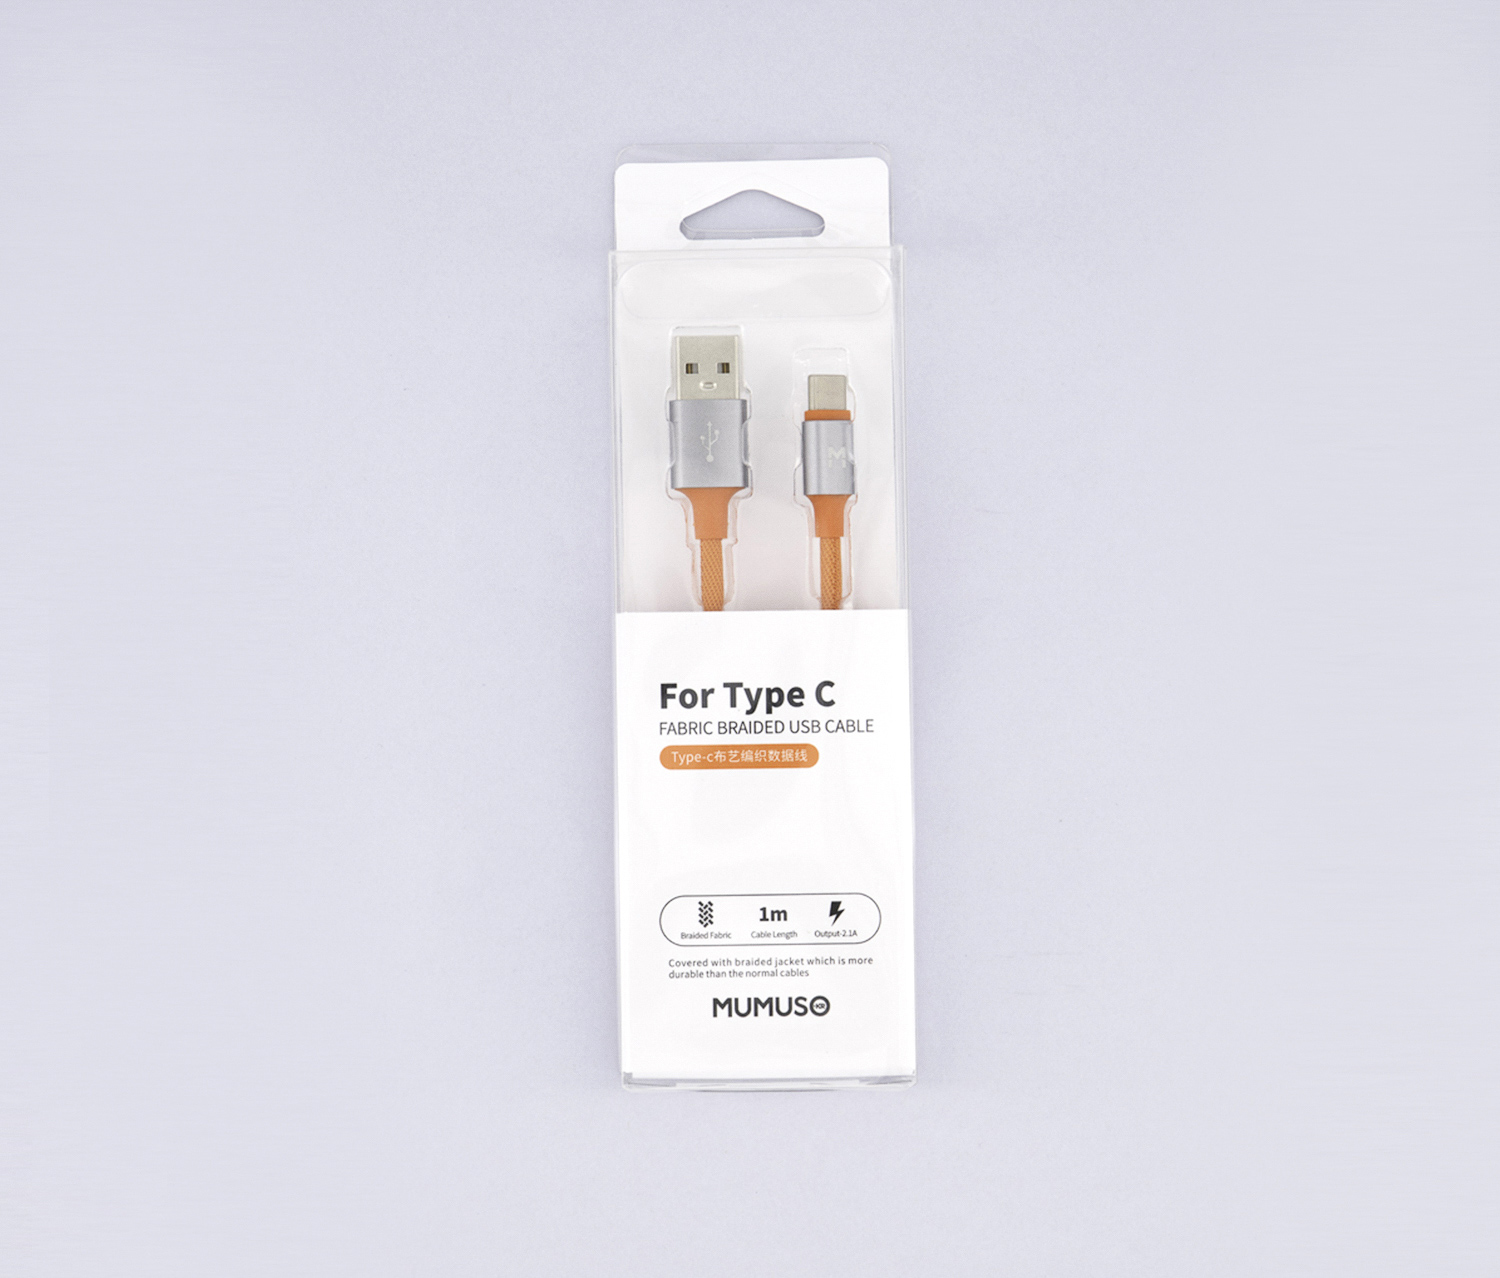 Type-C Fabric Braided USB Cable, Orange